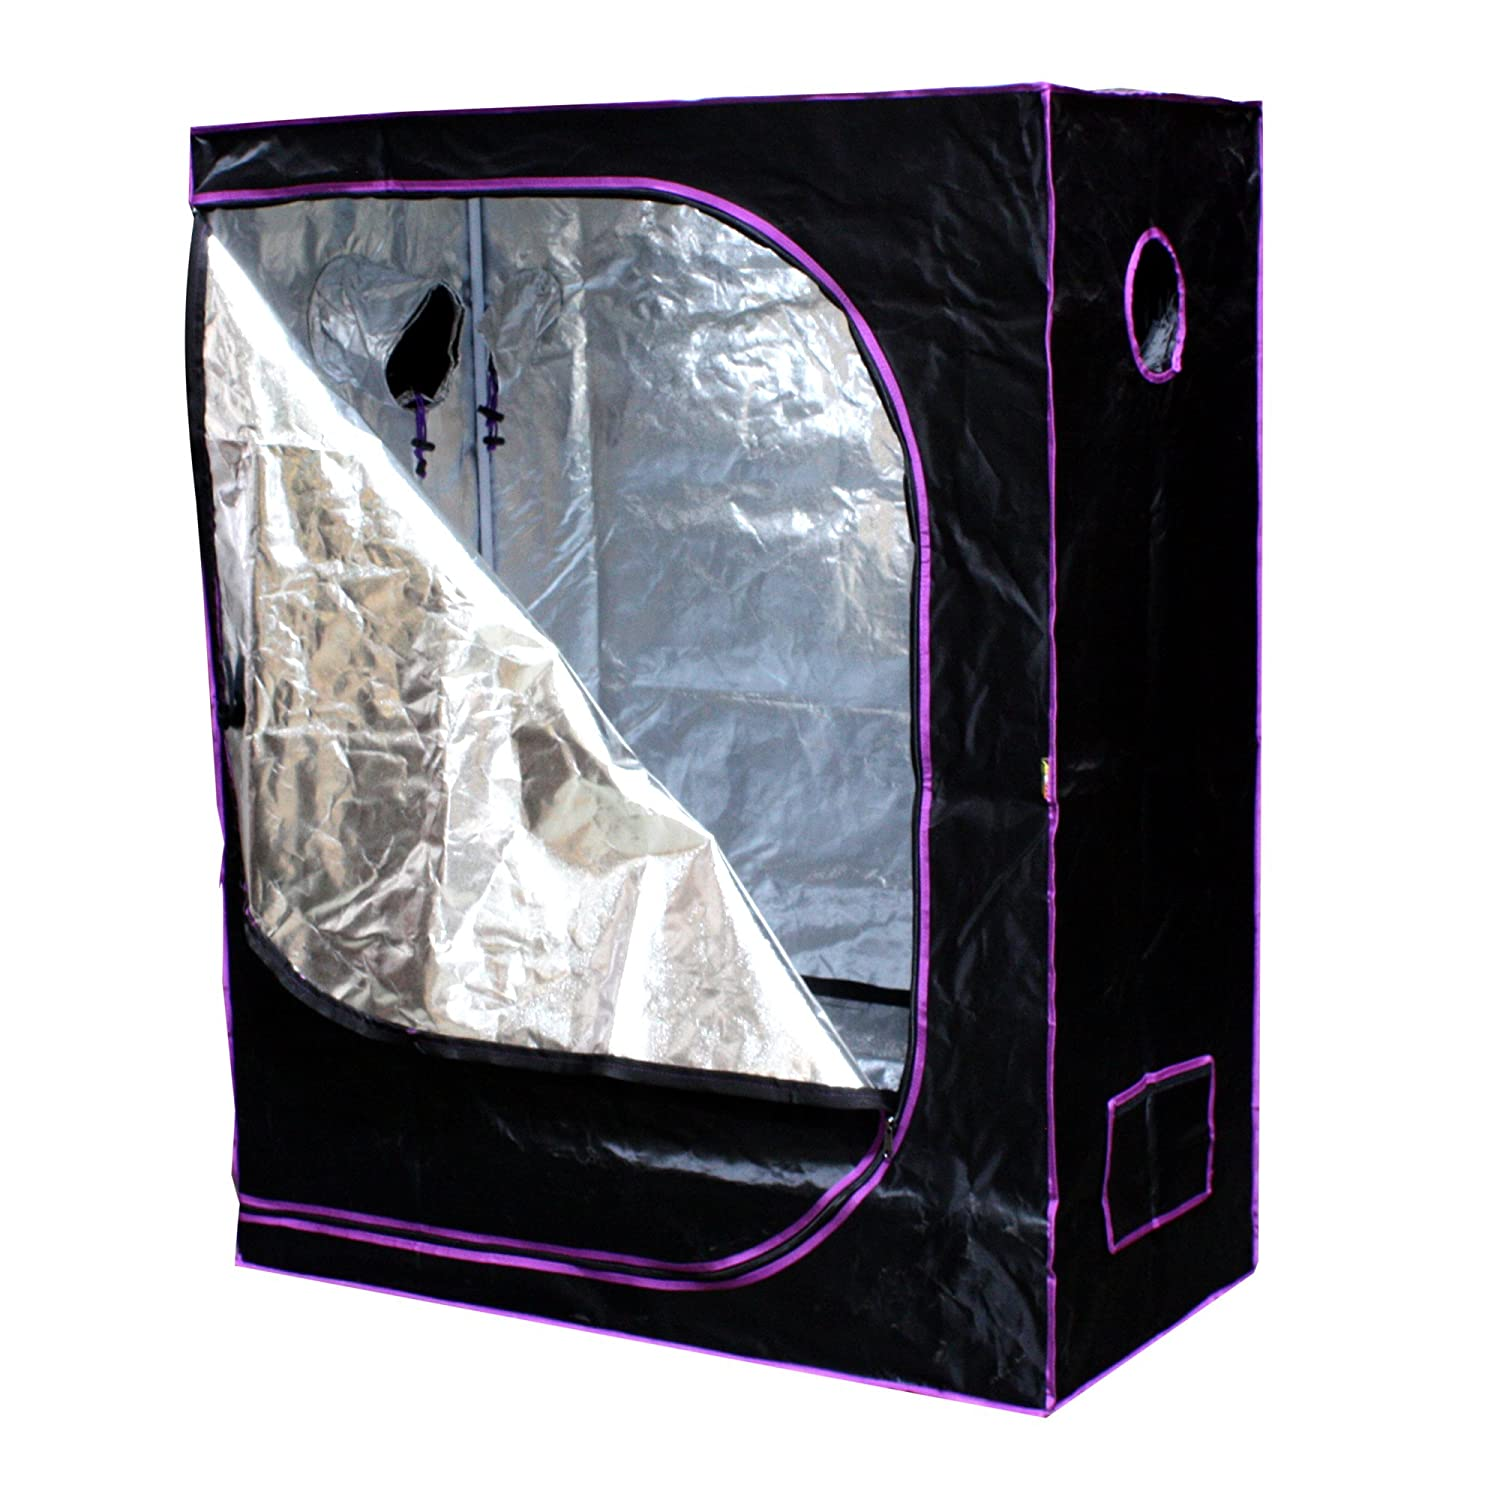 Apollo Horticulture 48u201dx24u201dx60u201d Mylar Hydroponic Grow Tent for Indoor Plant Growing  sc 1 st  SumoGardener & 5 Best Grow Tents 2018 Reviews u0026 Guide - Top Rated On The Market